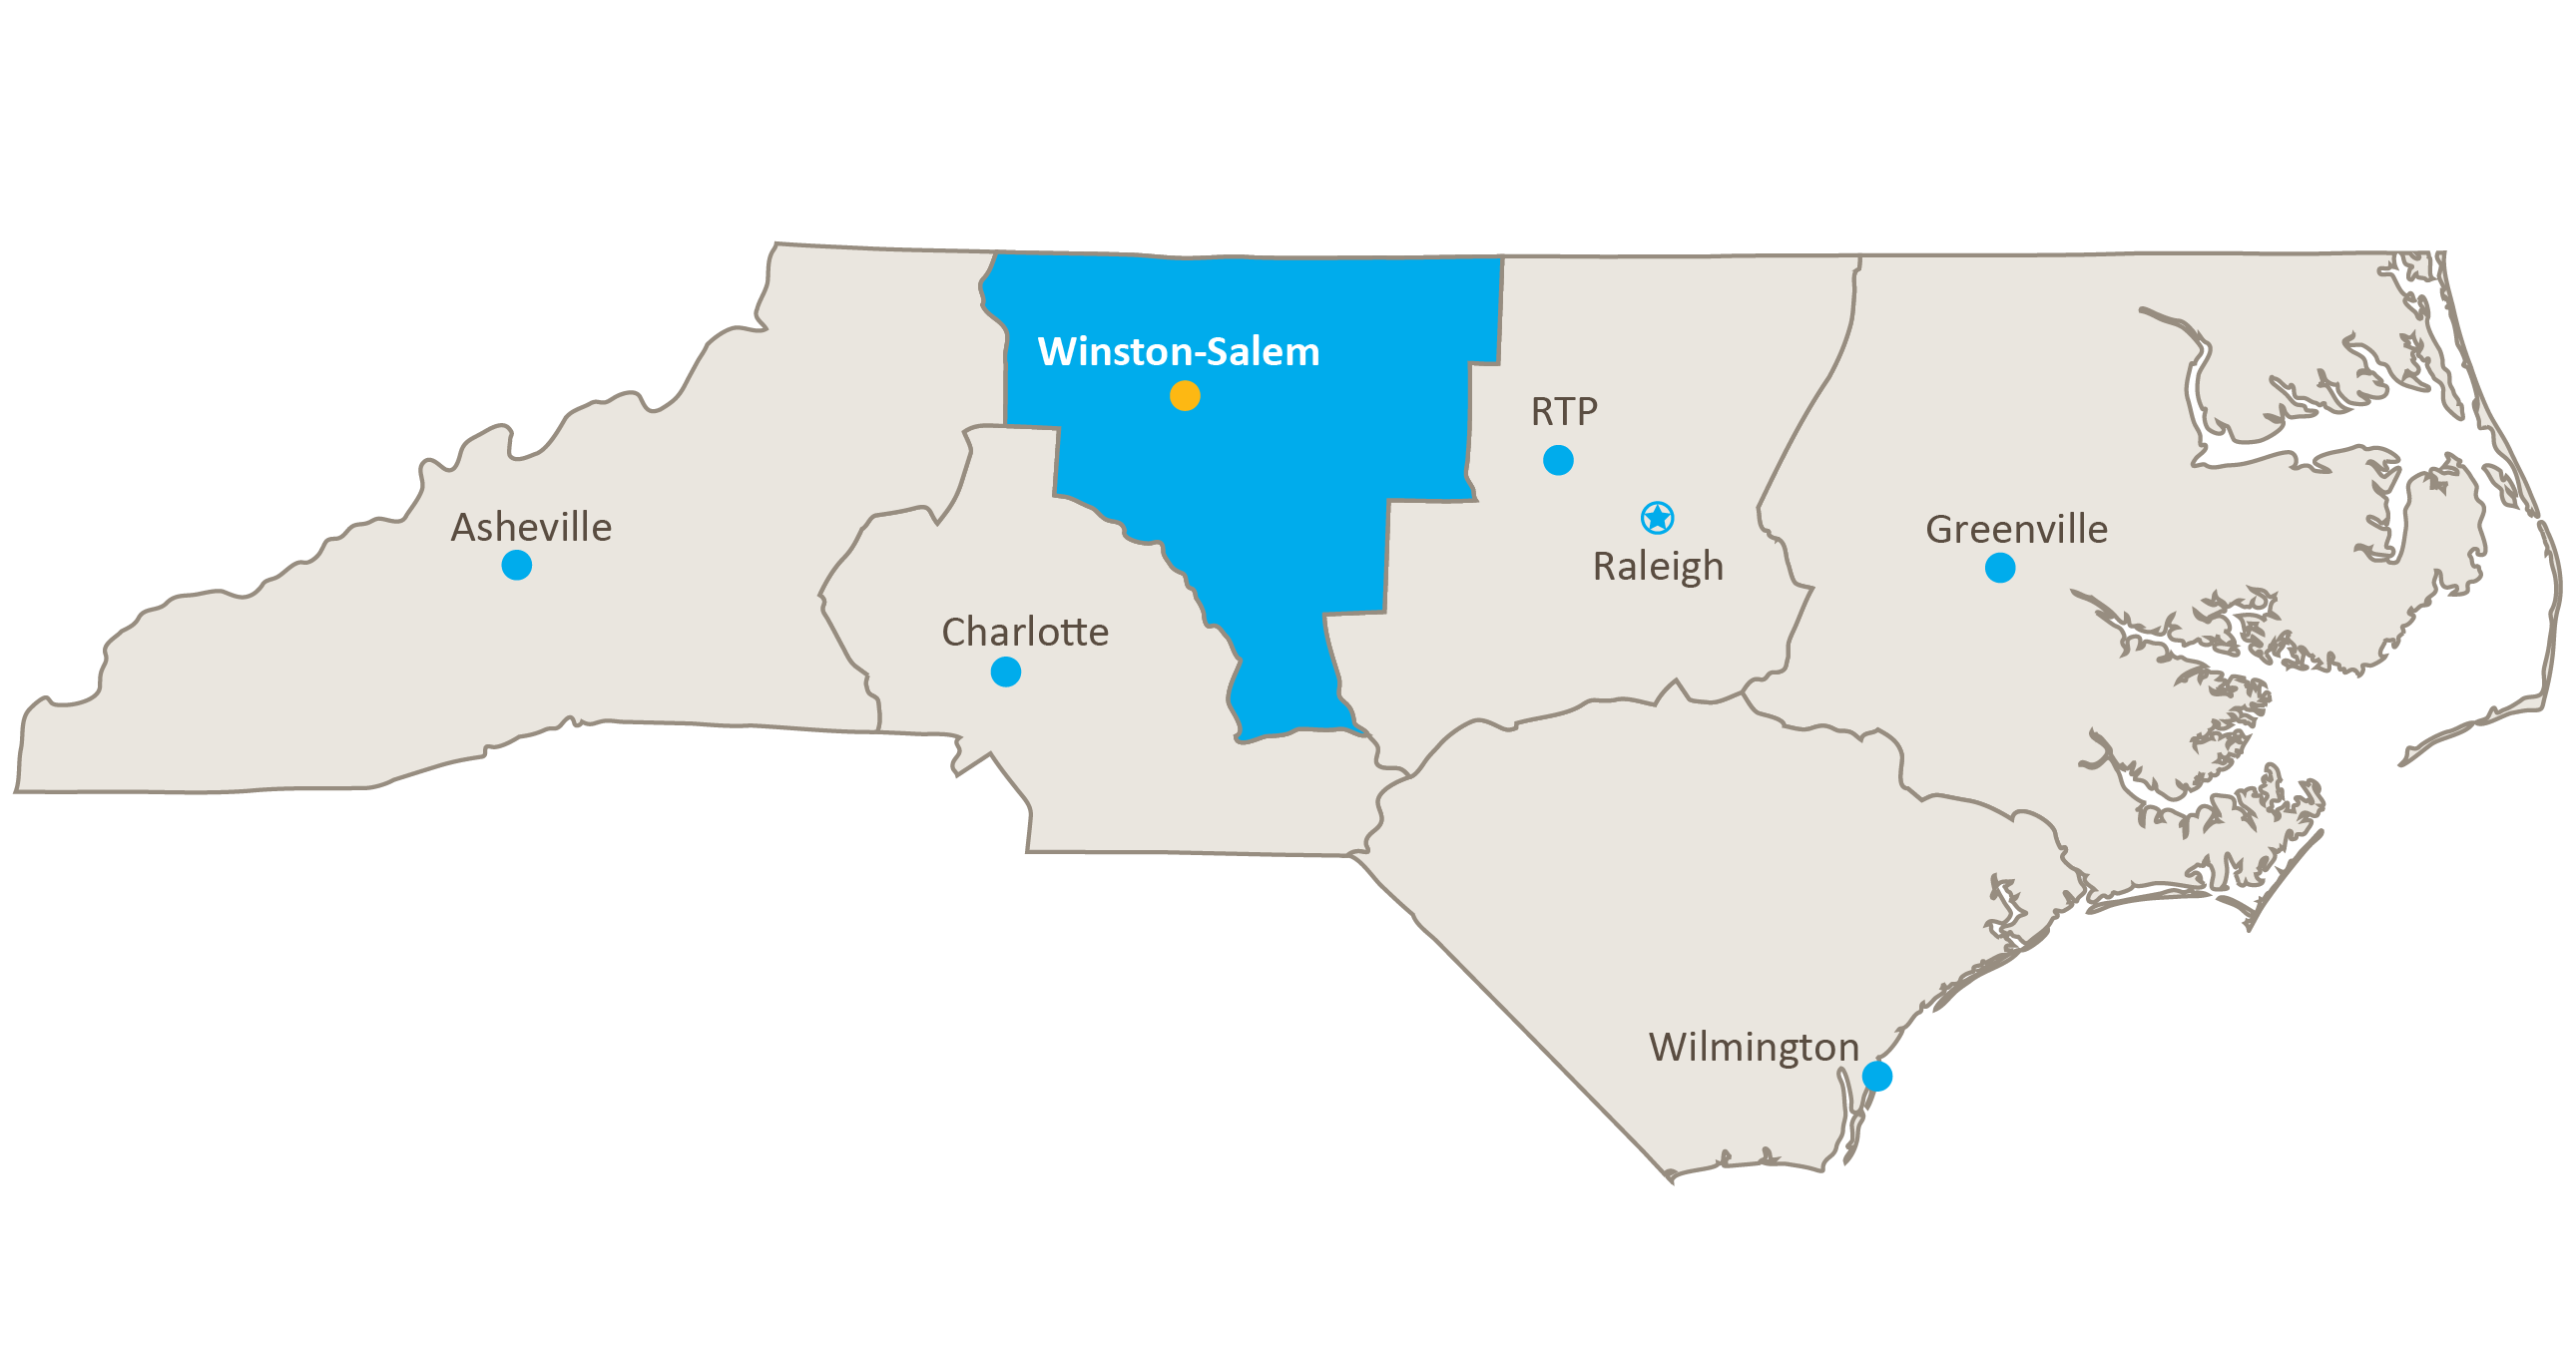 Piedmont Triad Life Science | North Carolina Biotechnology ... on map of memphis tn, map of salemburg nc, map of hog island nc, map of asheville nc, map of griffin nc, map of charlottesville nc, map of biltmore forest nc, map of columbus ga, map of charlotte nc, map of orange co nc, map of ogden nc, map of raleigh nc, map of north carolina, map of bunnlevel nc, map of greenville nc, map of clarksville nc, map of moyock nc, map of saxapahaw nc, map of ferguson nc, map of atlanta,